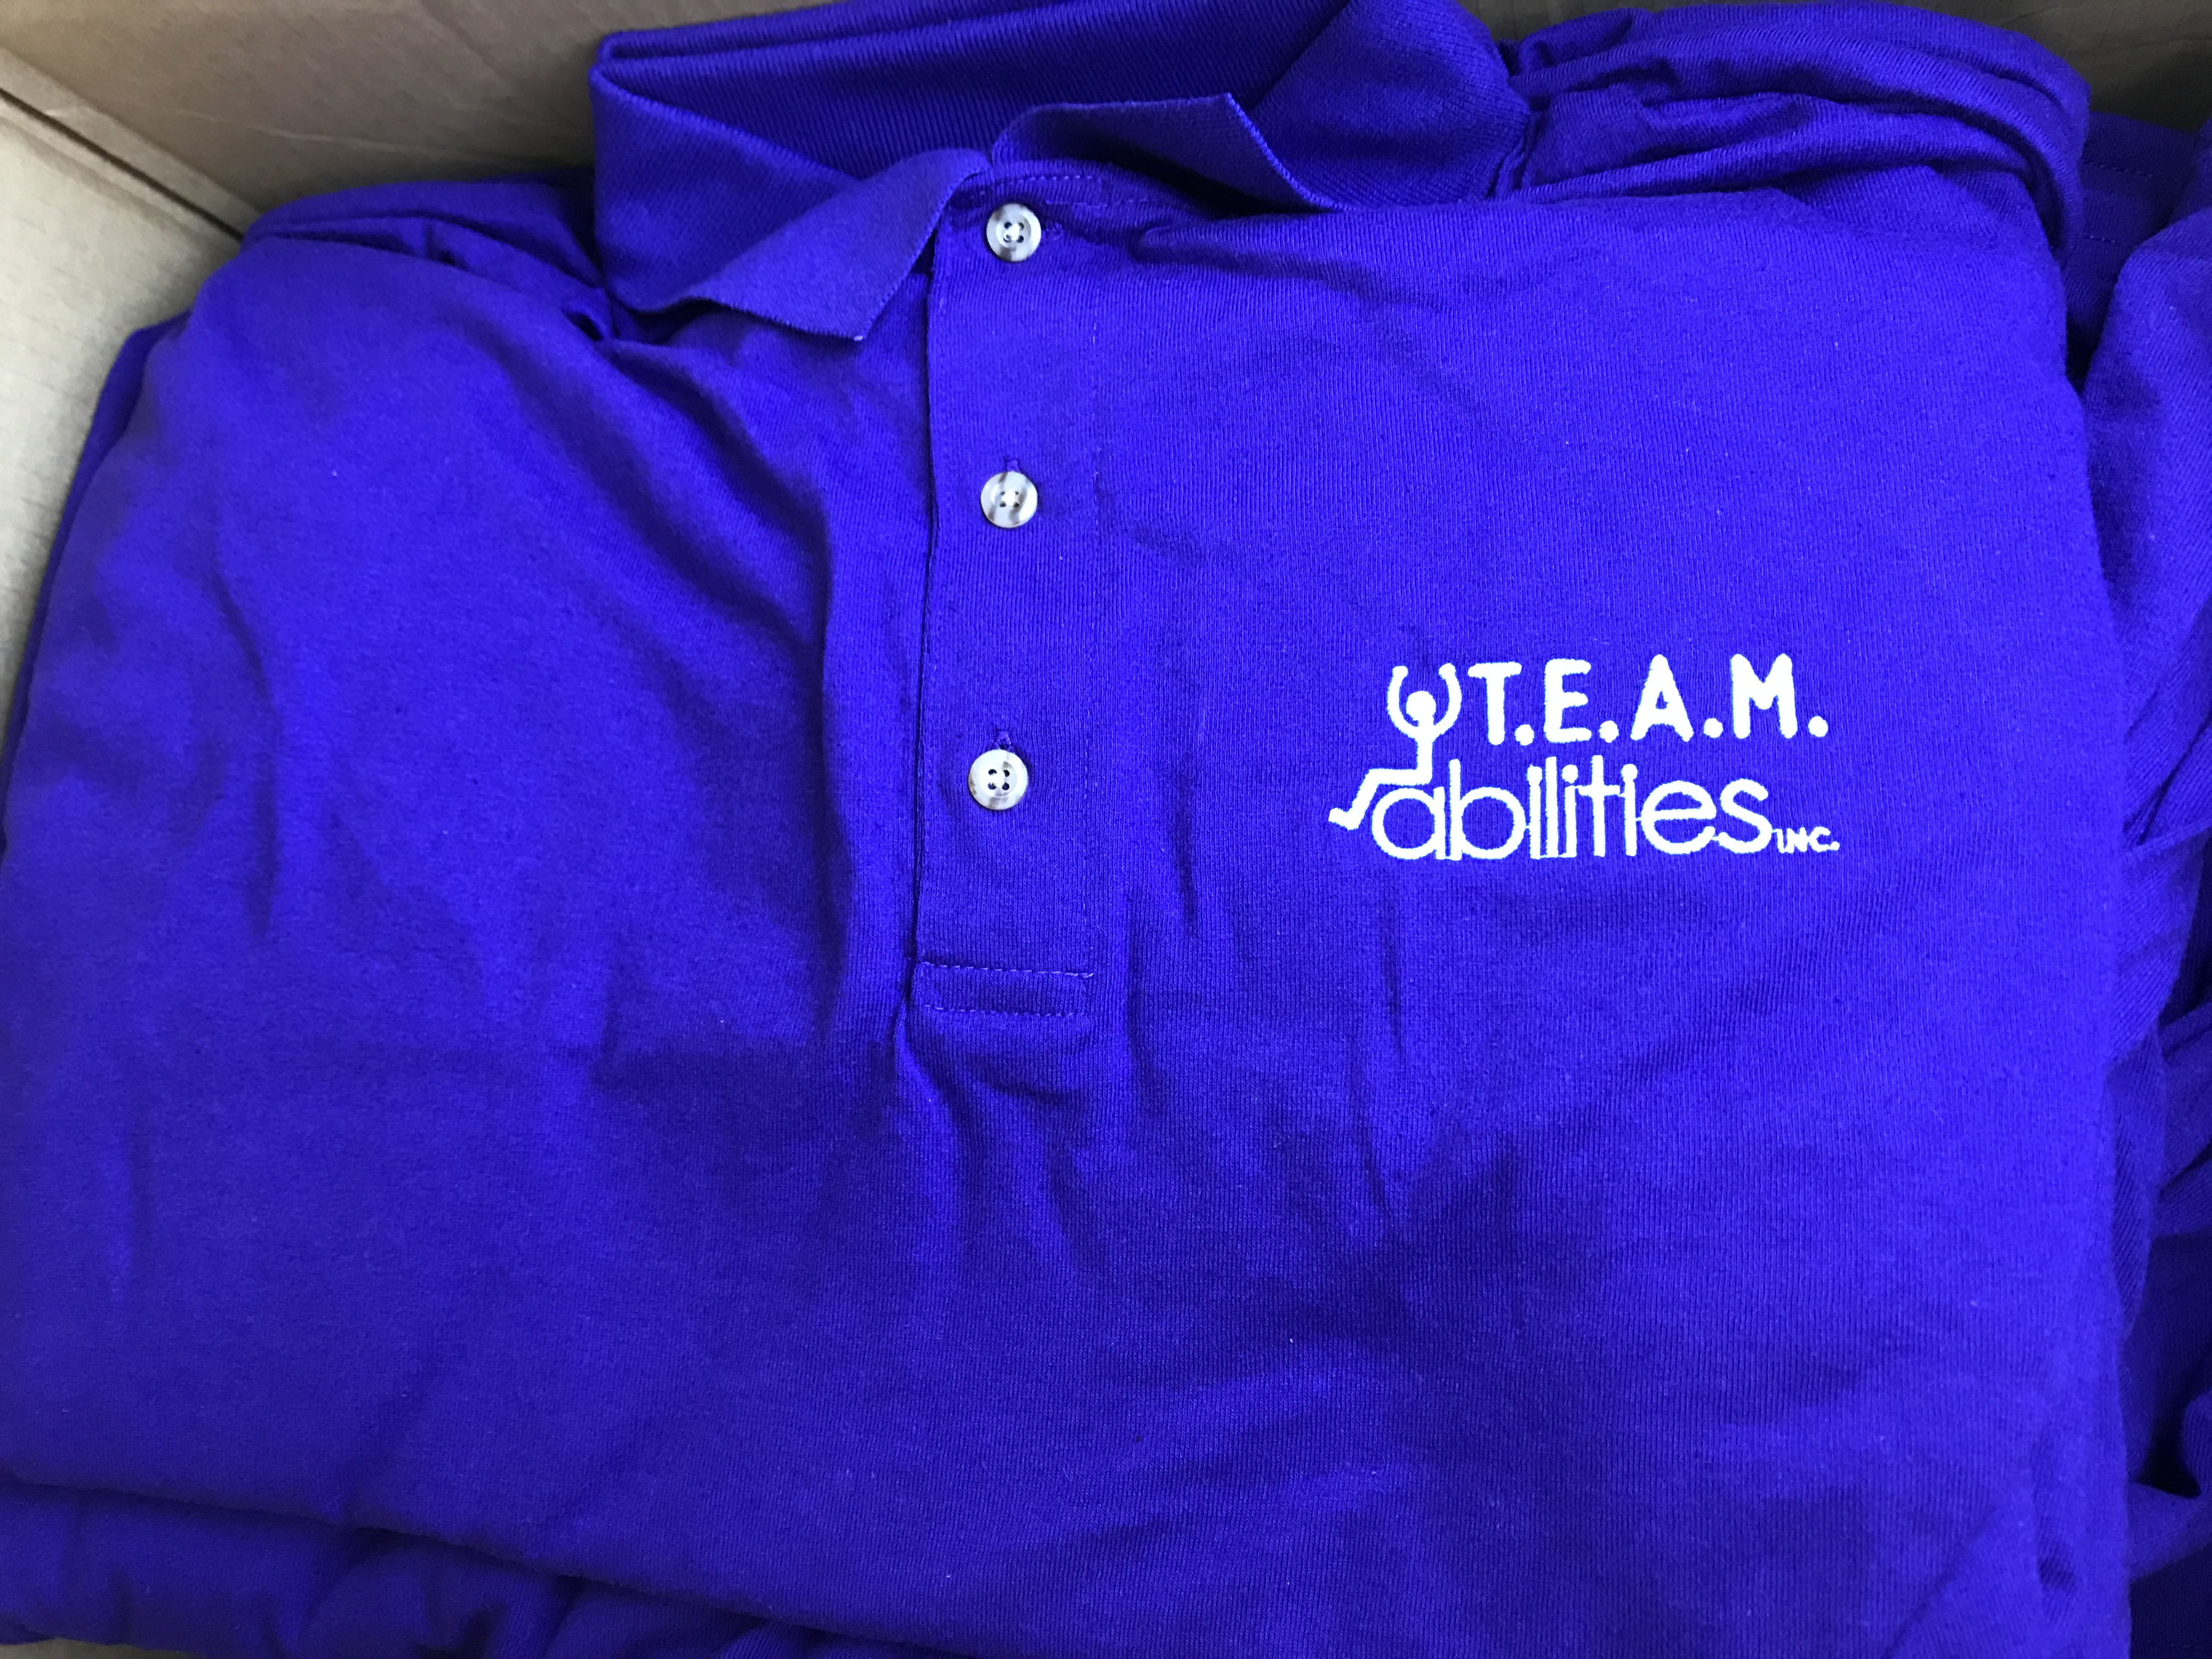 Embroidery Embroidered Polos for Team Abilities